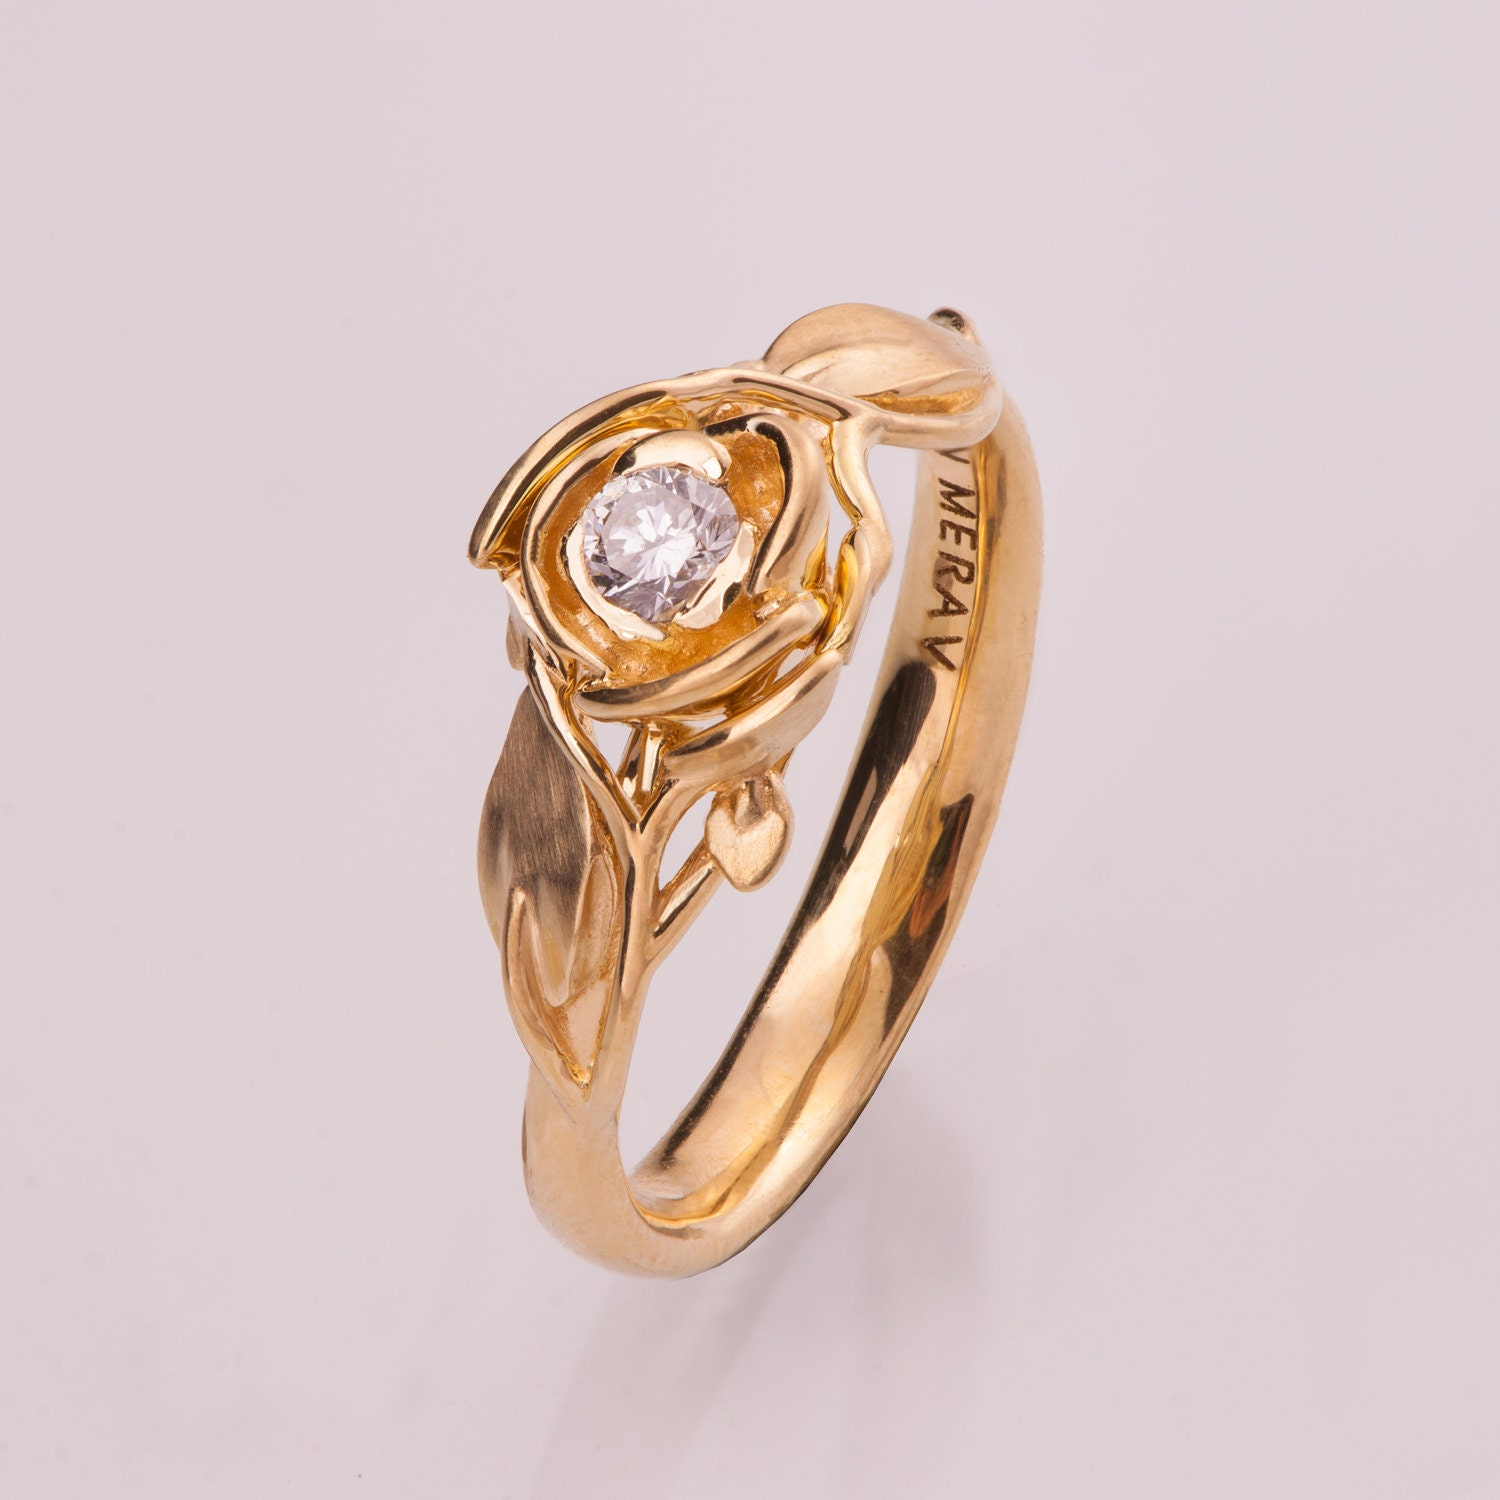 good matvuk korean wedding feminist of rings gold inspirational com a at wife ring becoming last awesome on korea